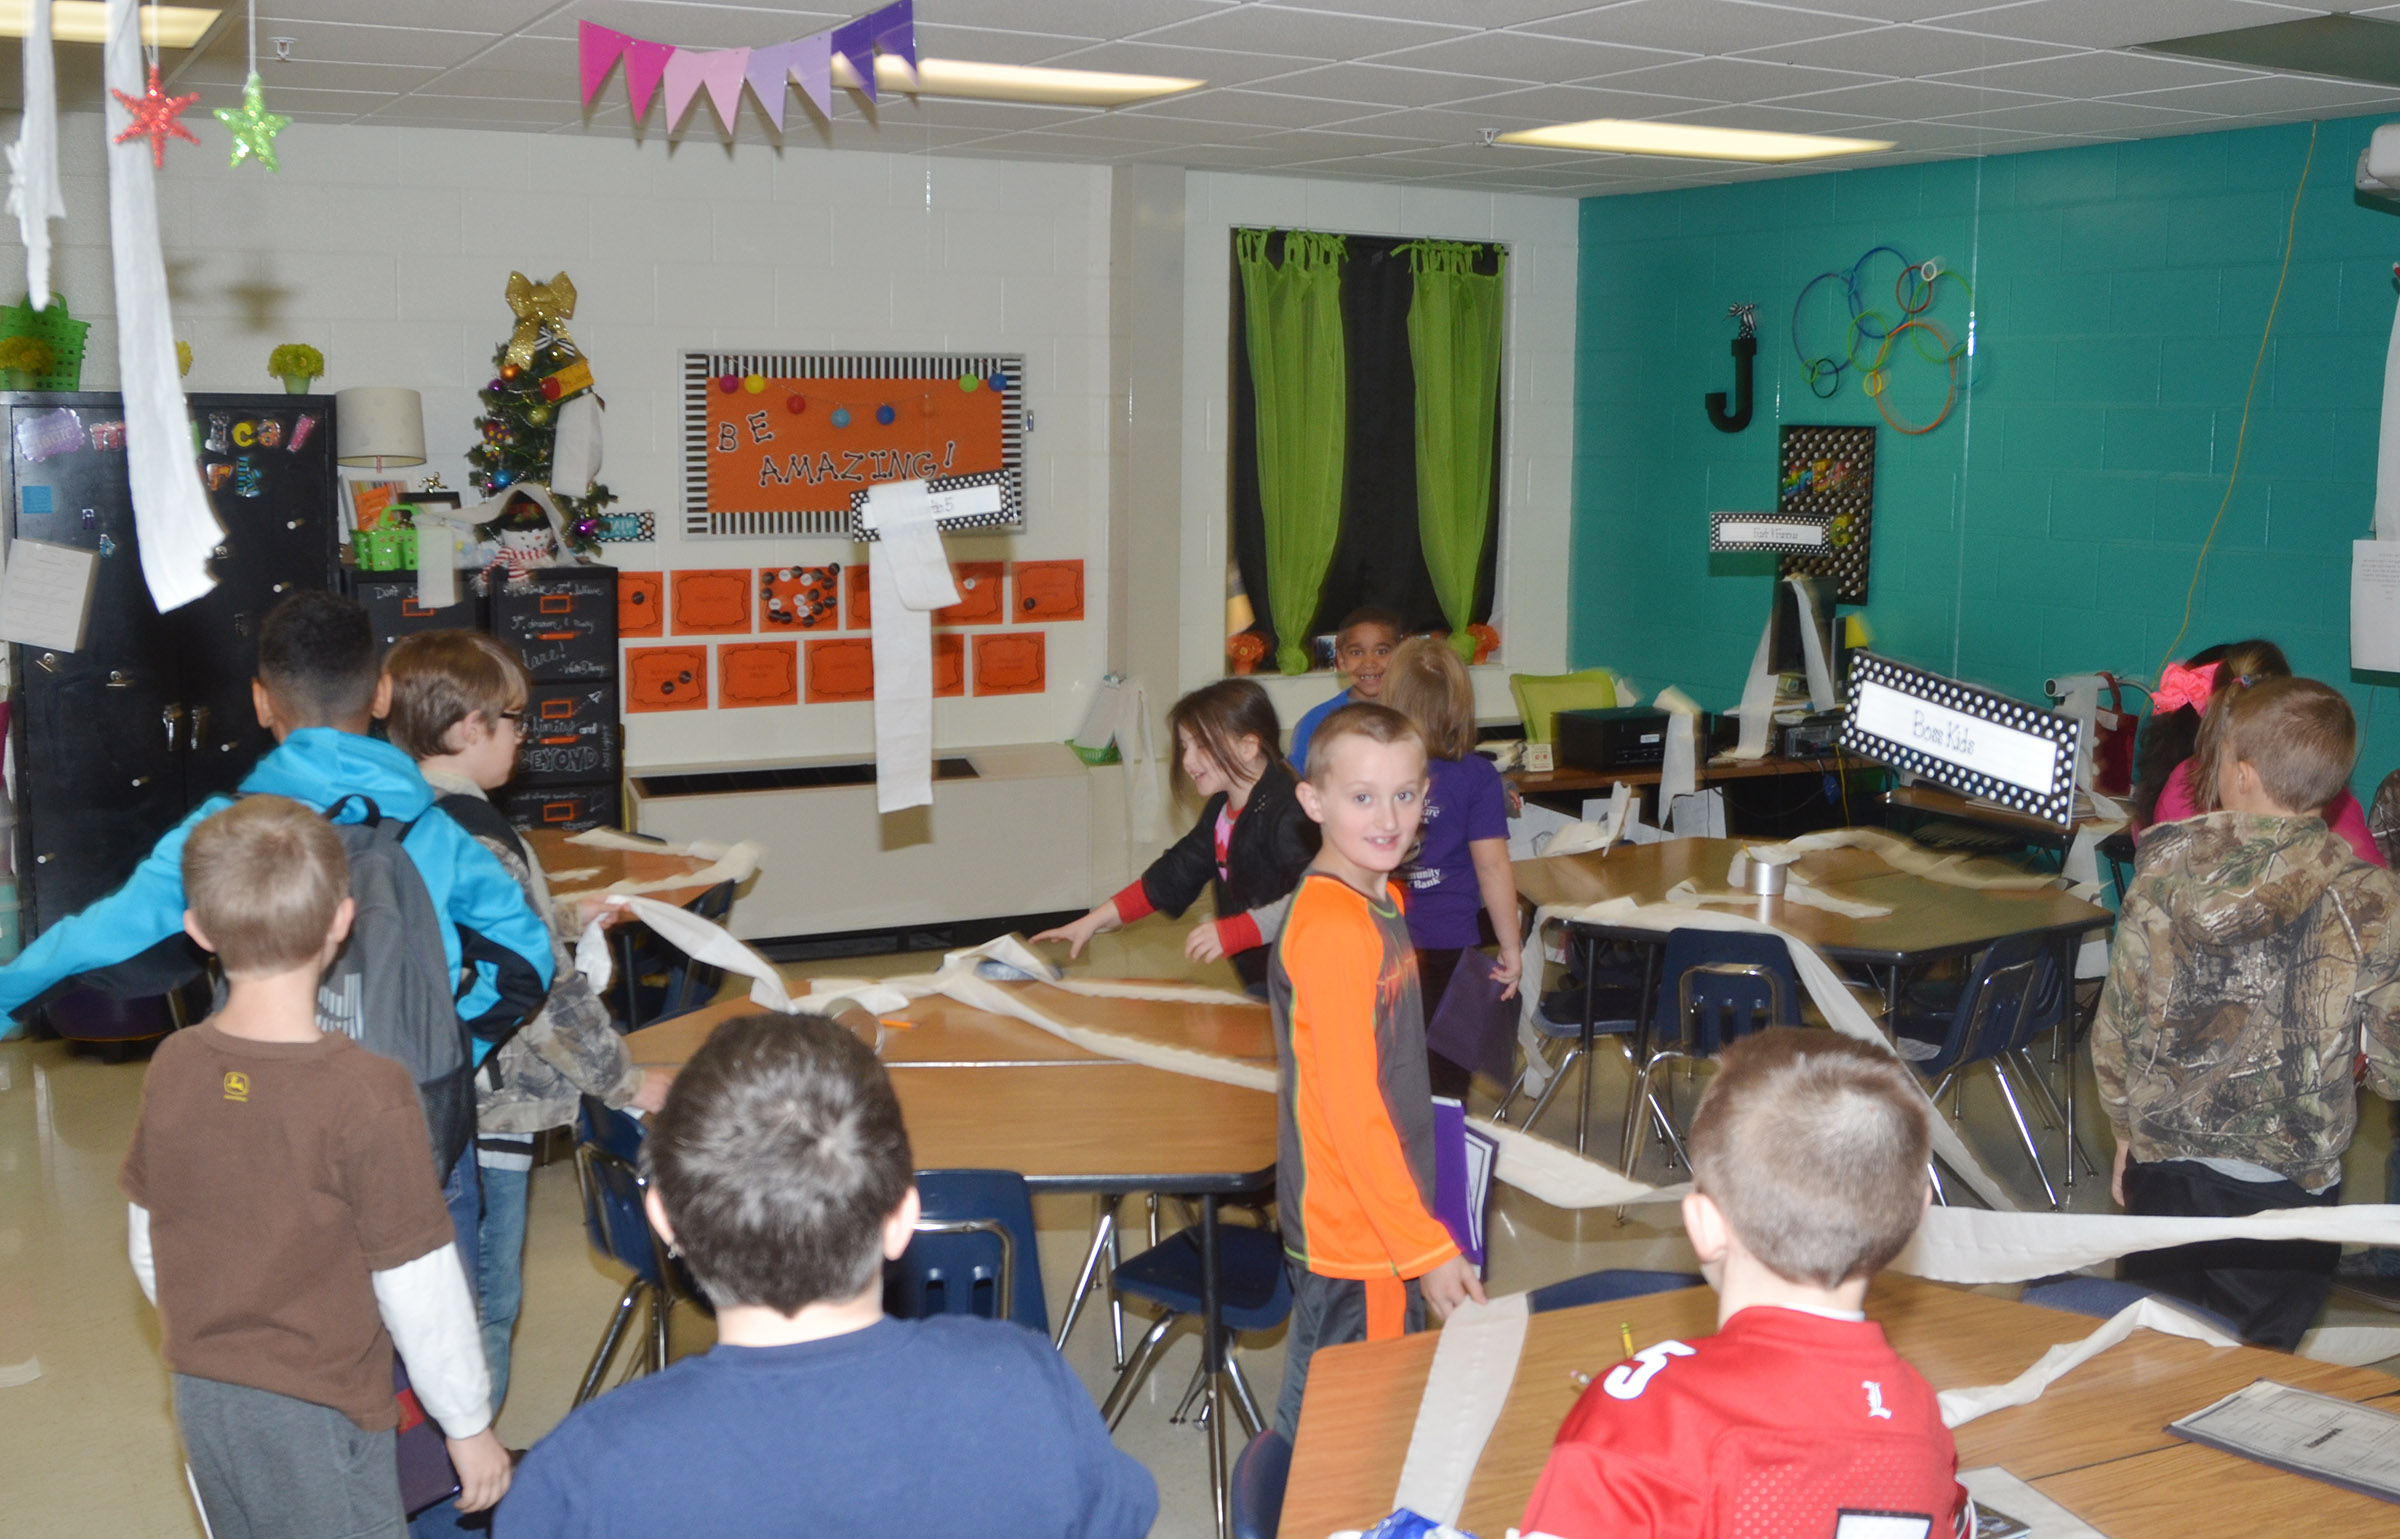 CES third-graders in Hannah Jones's class came to school recently and found their elf had thrown toilet paper all over their classroom.